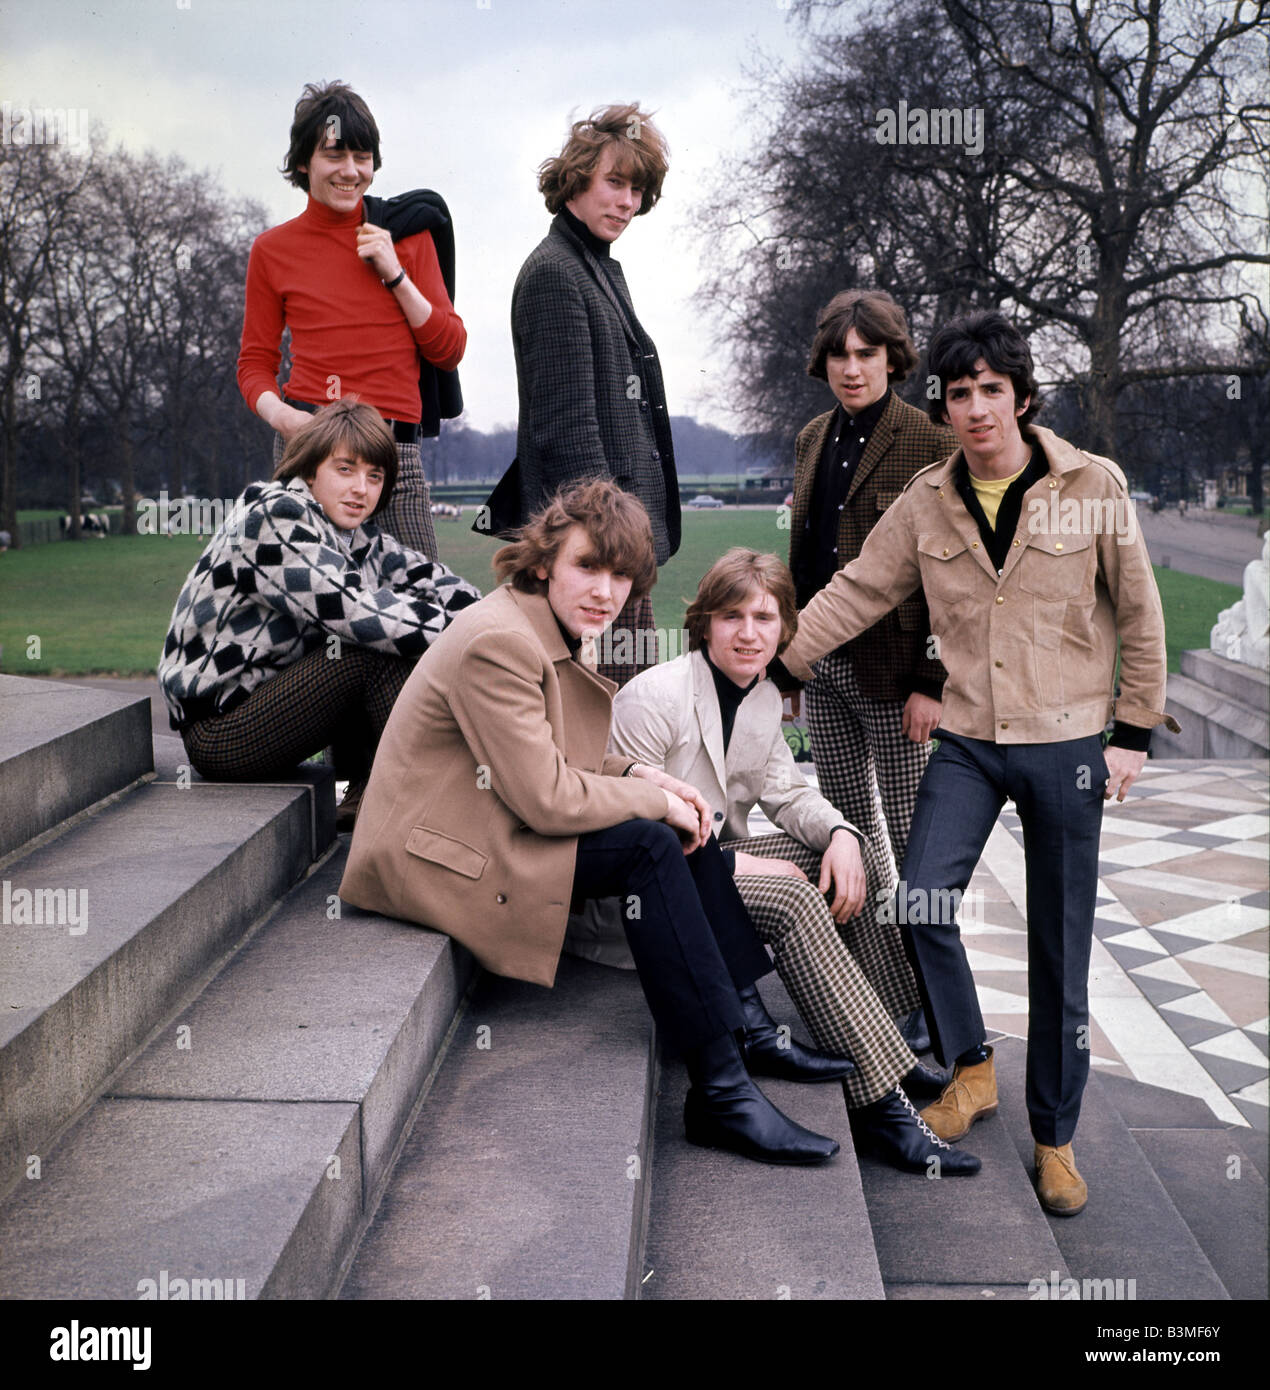 TONY CRANE AND THE MERSEYBEATS about 1970 - after The Merseybeats split up Tony Crane toured with varying lineups. - Stock Image